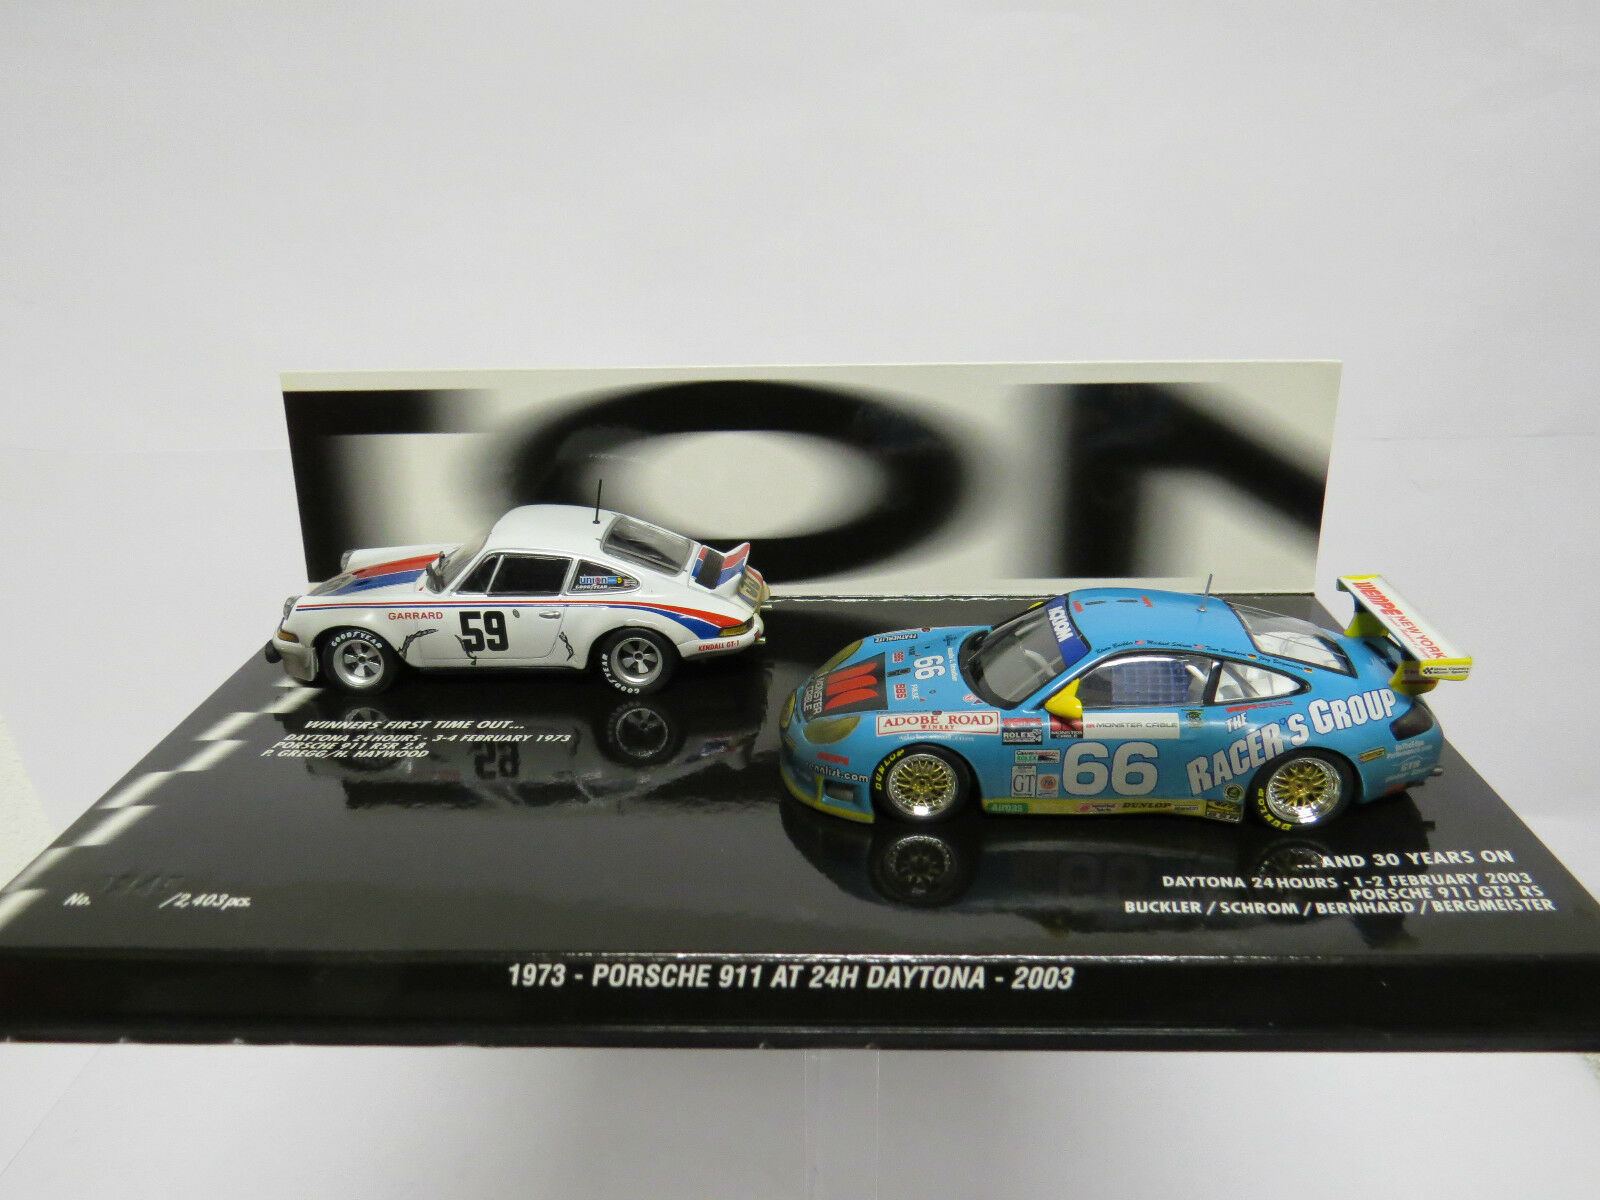 Porsche 911 AT 24H Daytona 1973-2003 Minichamps 402036996 Very Rare